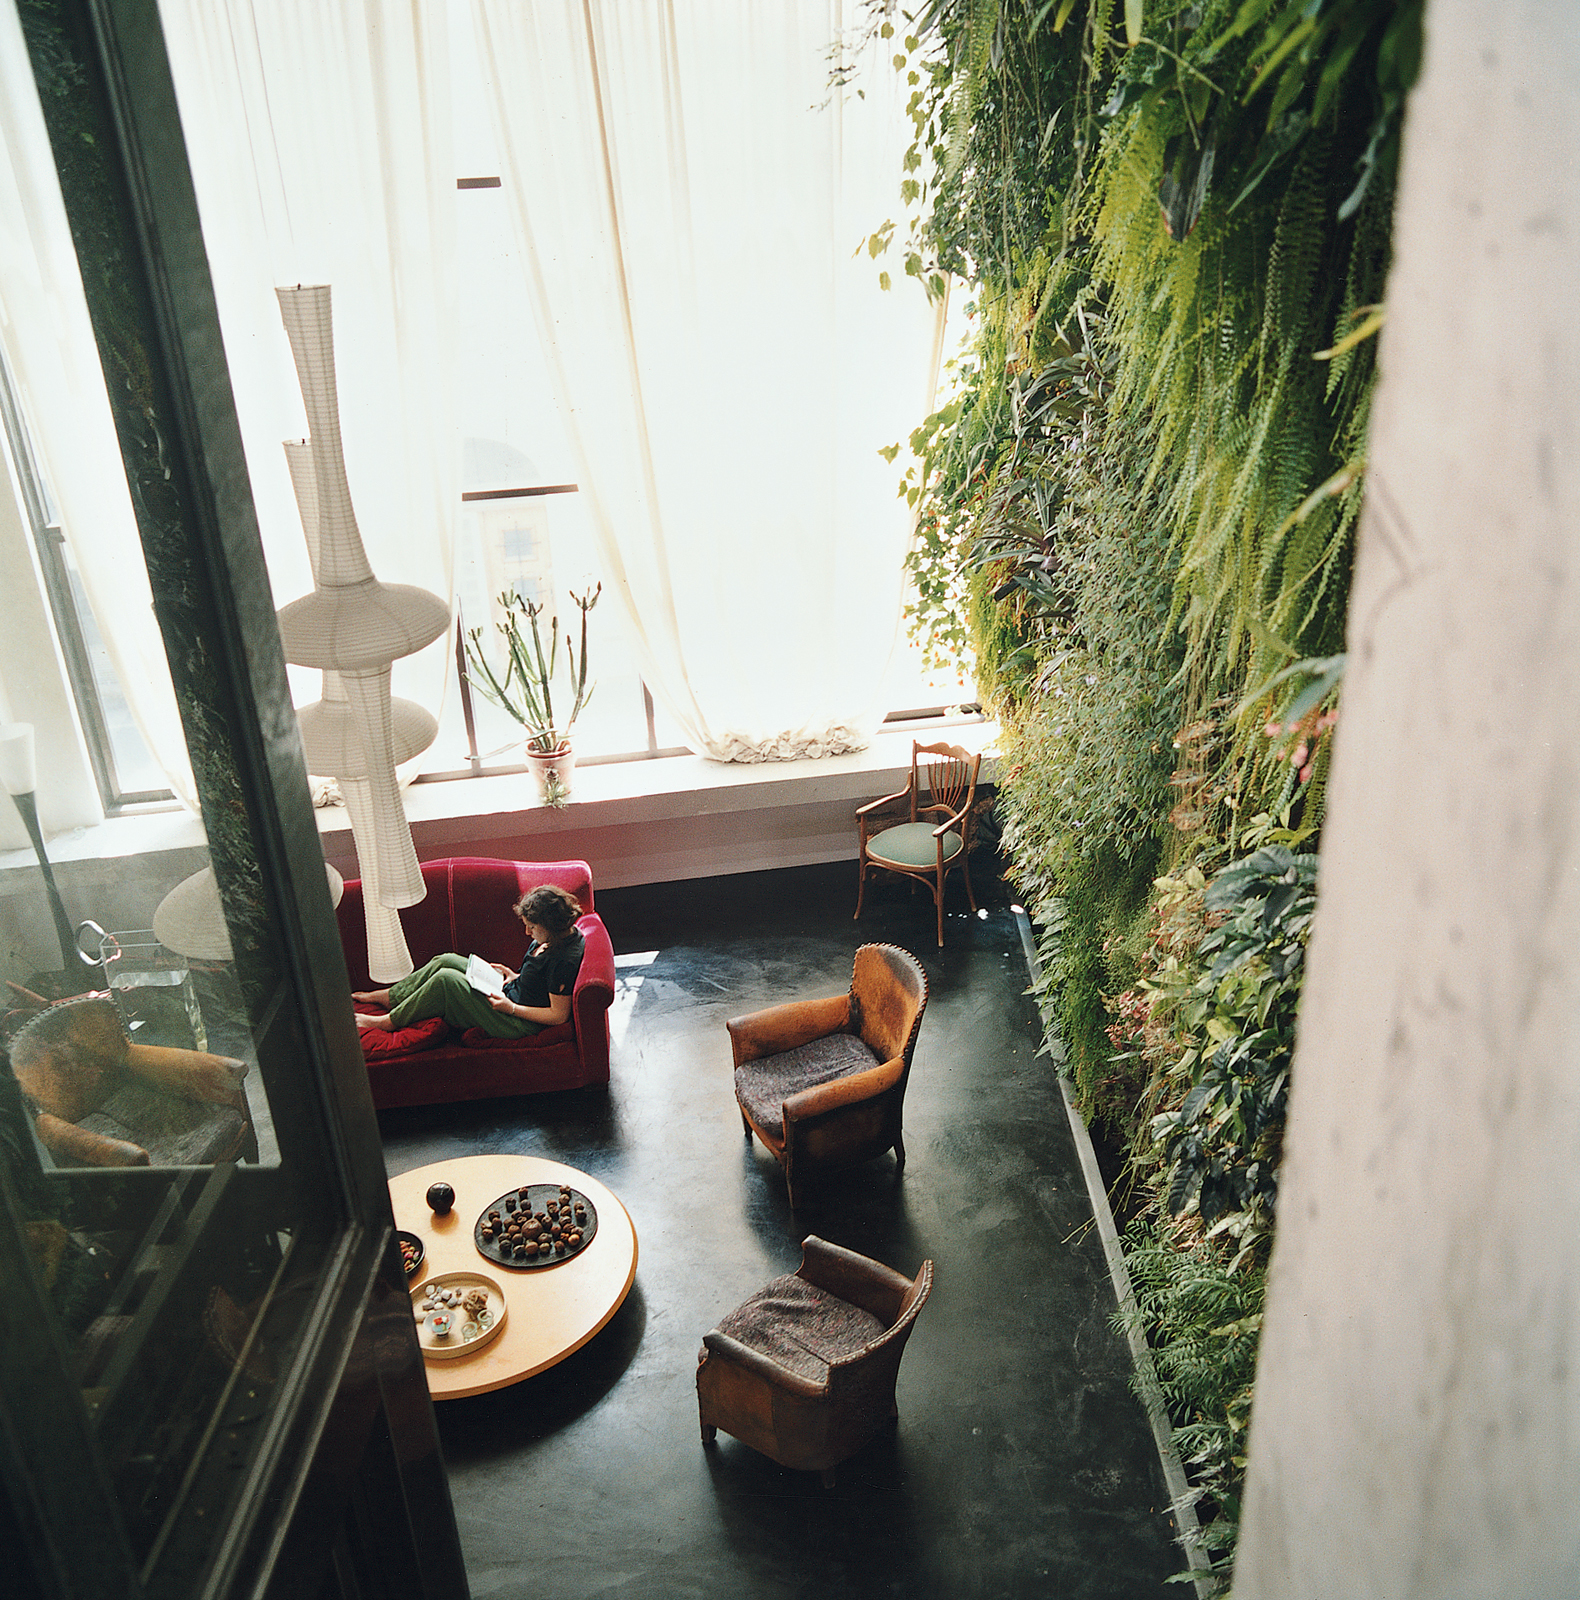 indoor gardens paris france blanc patrick dimanche house wall aerial